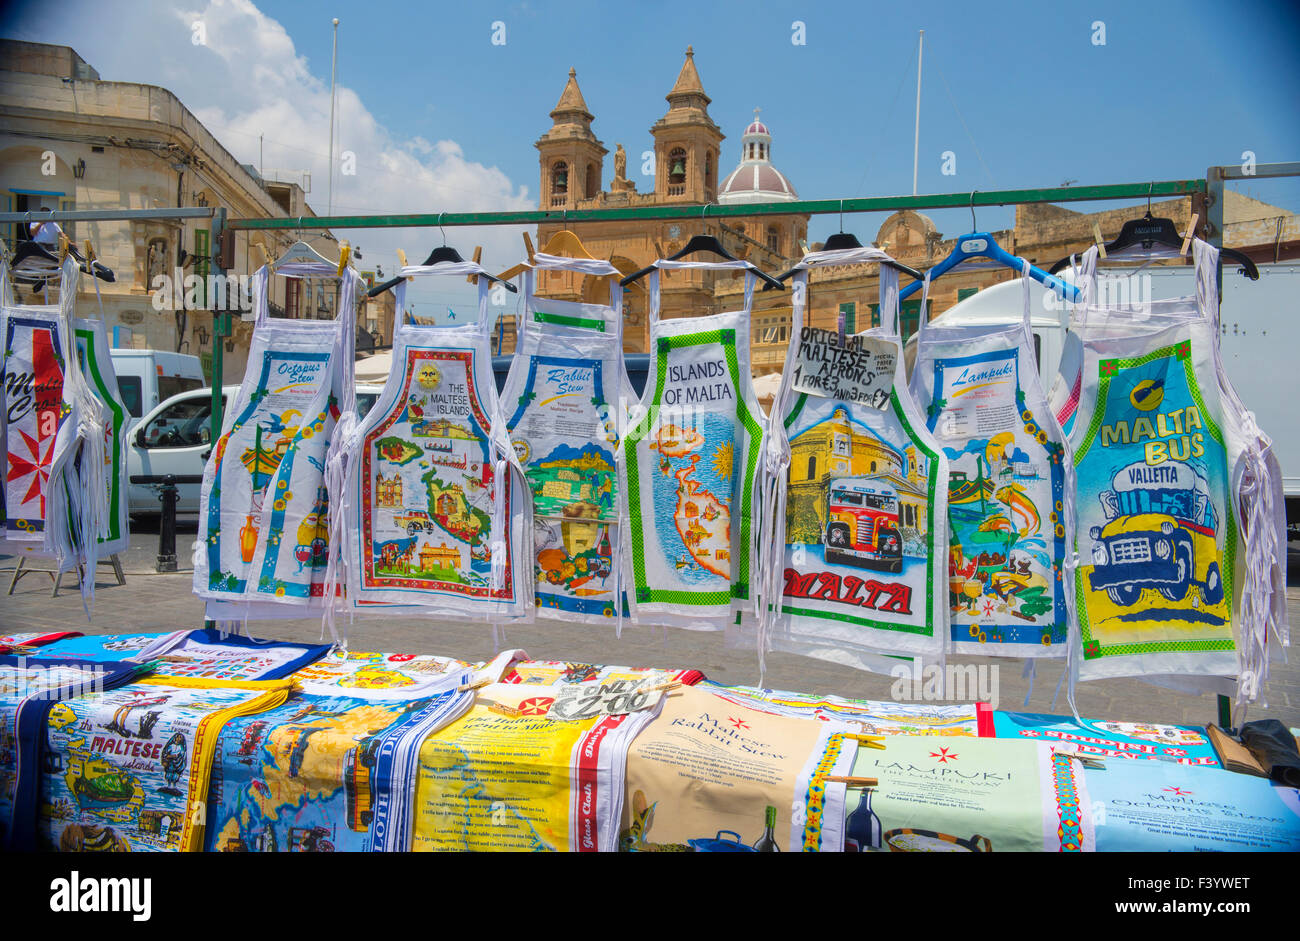 Maltese Market Stock Photos & Maltese Market Stock Images - Alamy